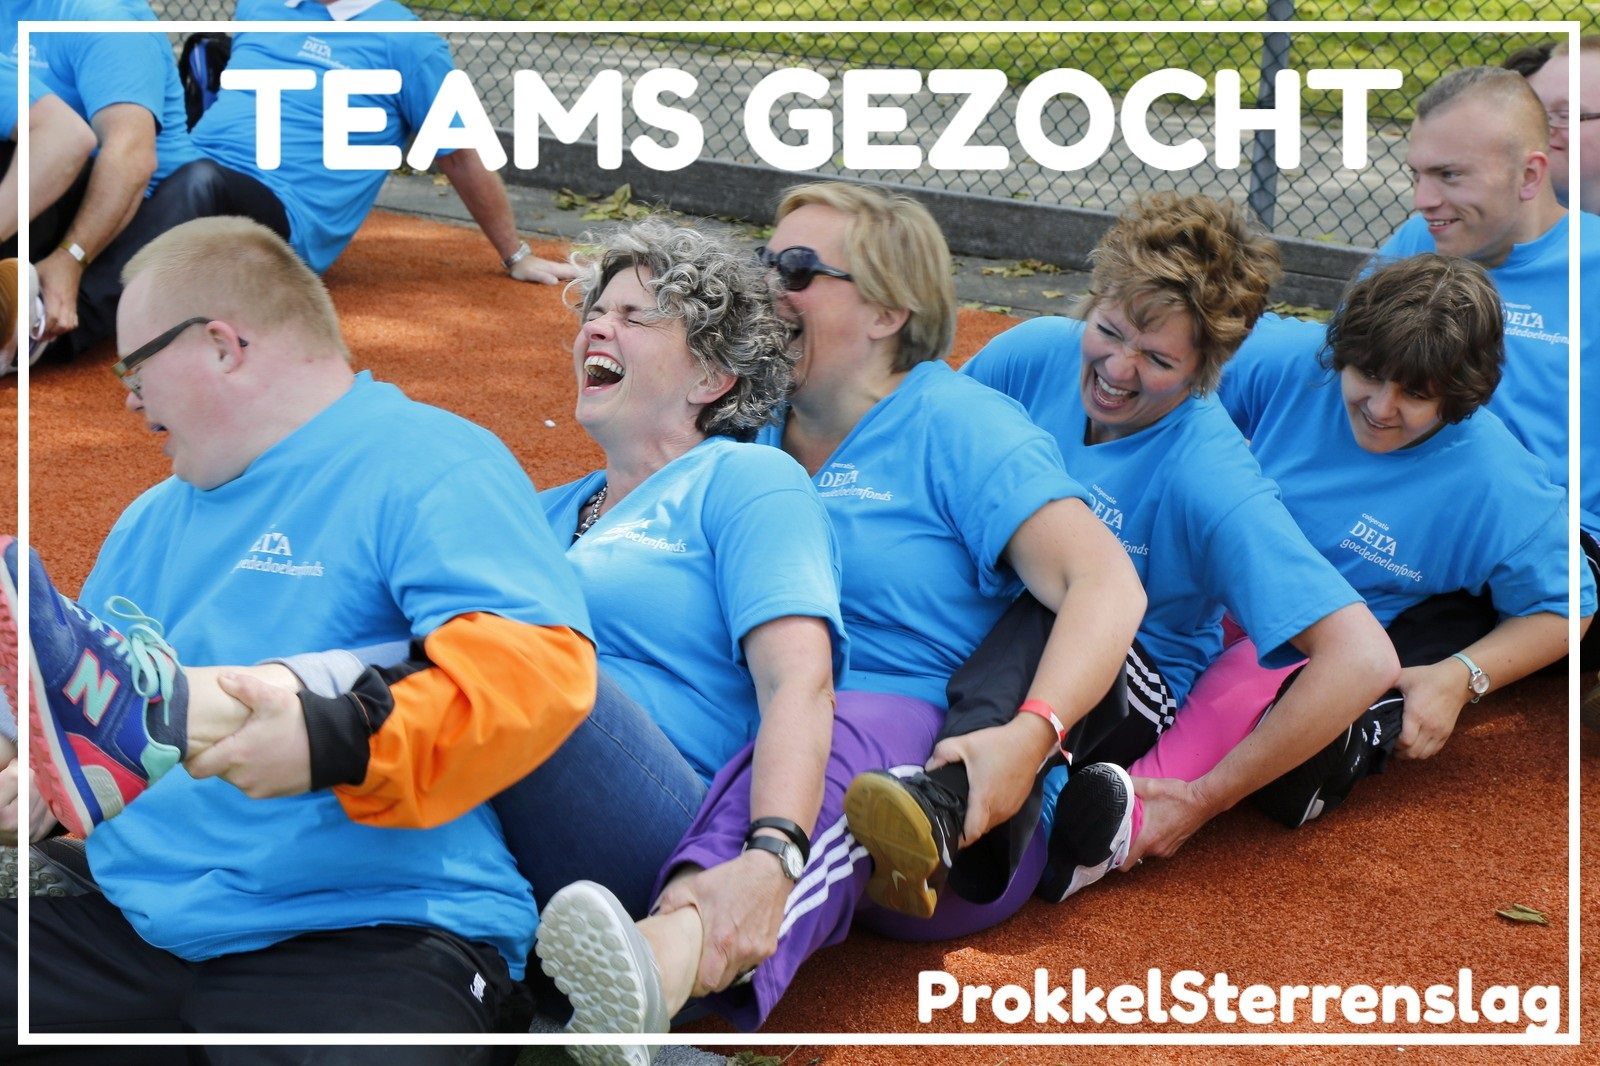 ProkkelSterrenslag Teams gezocht